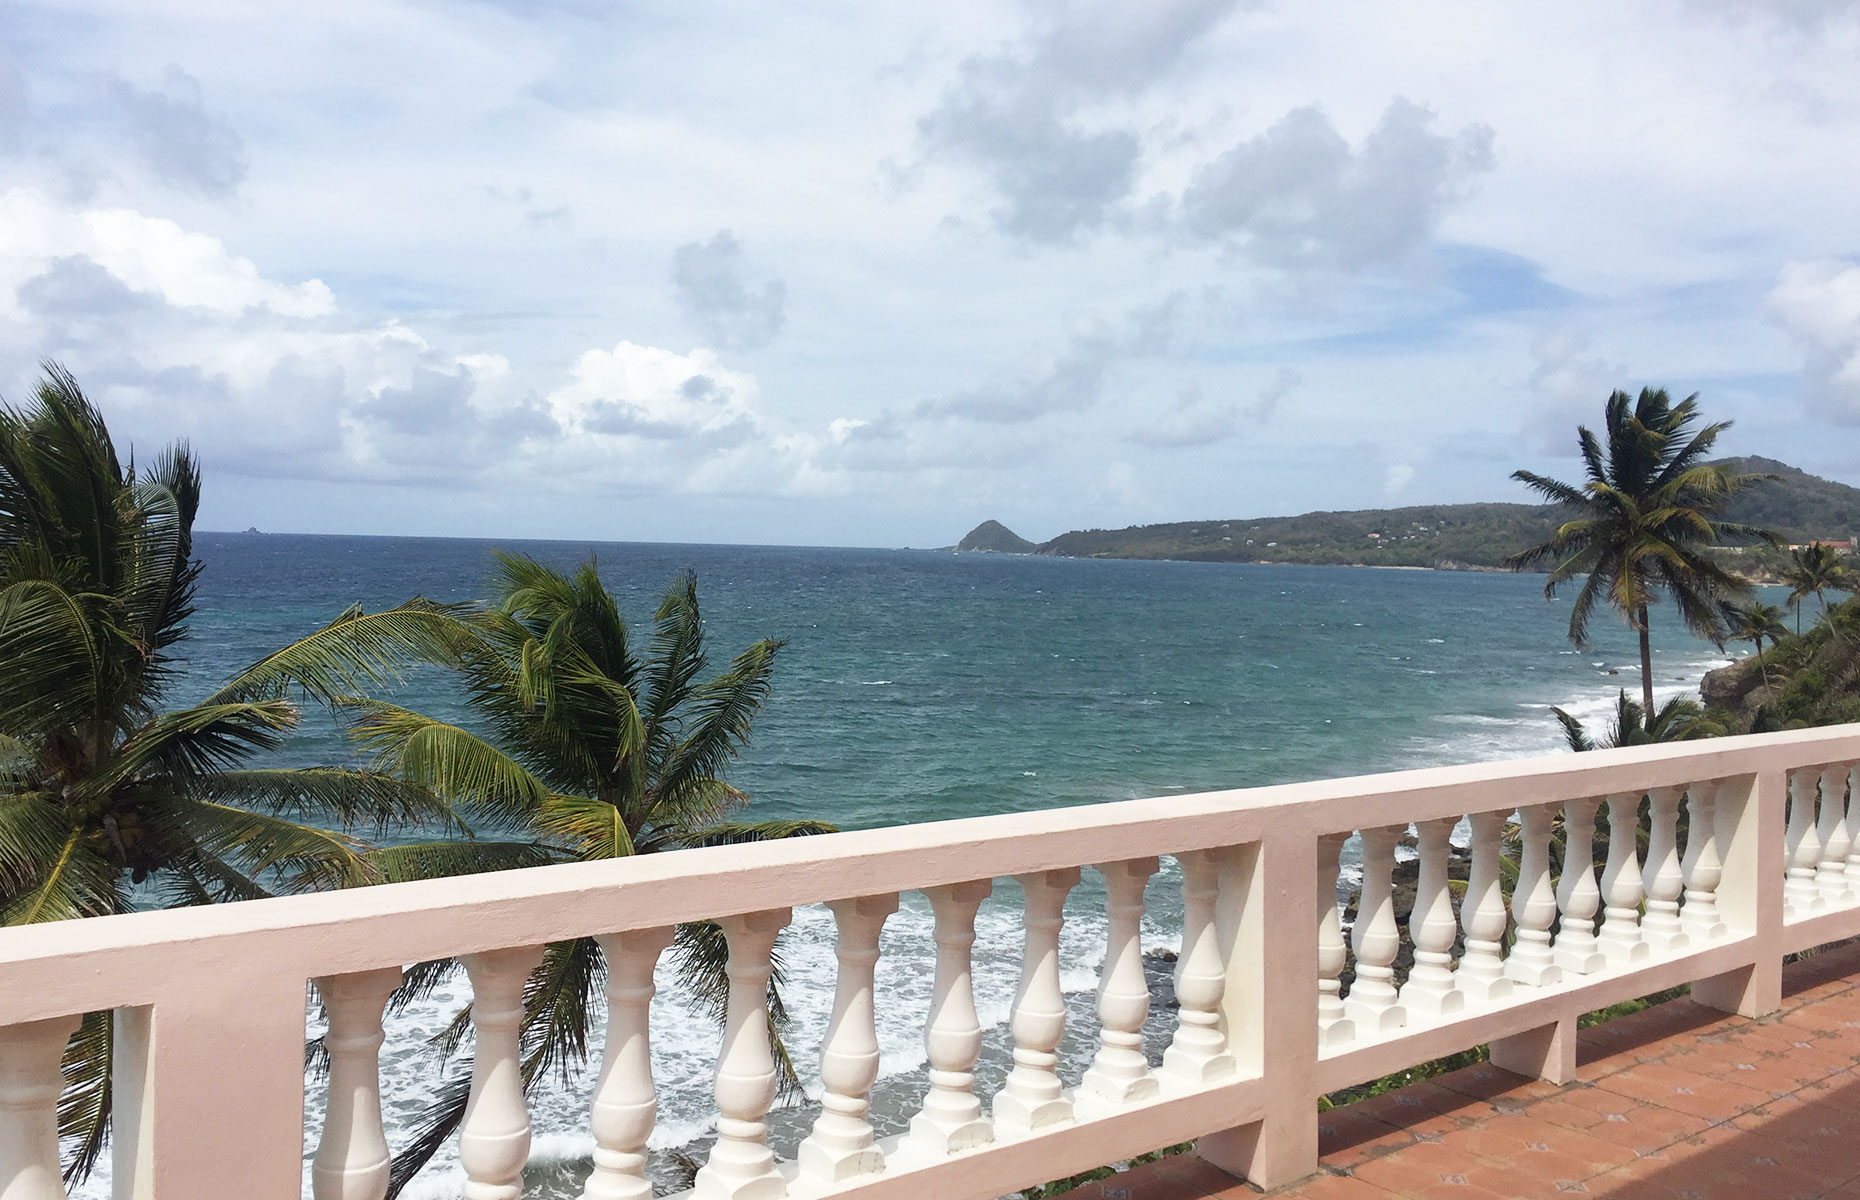 View from the veranda at the Petit Anse restaurant